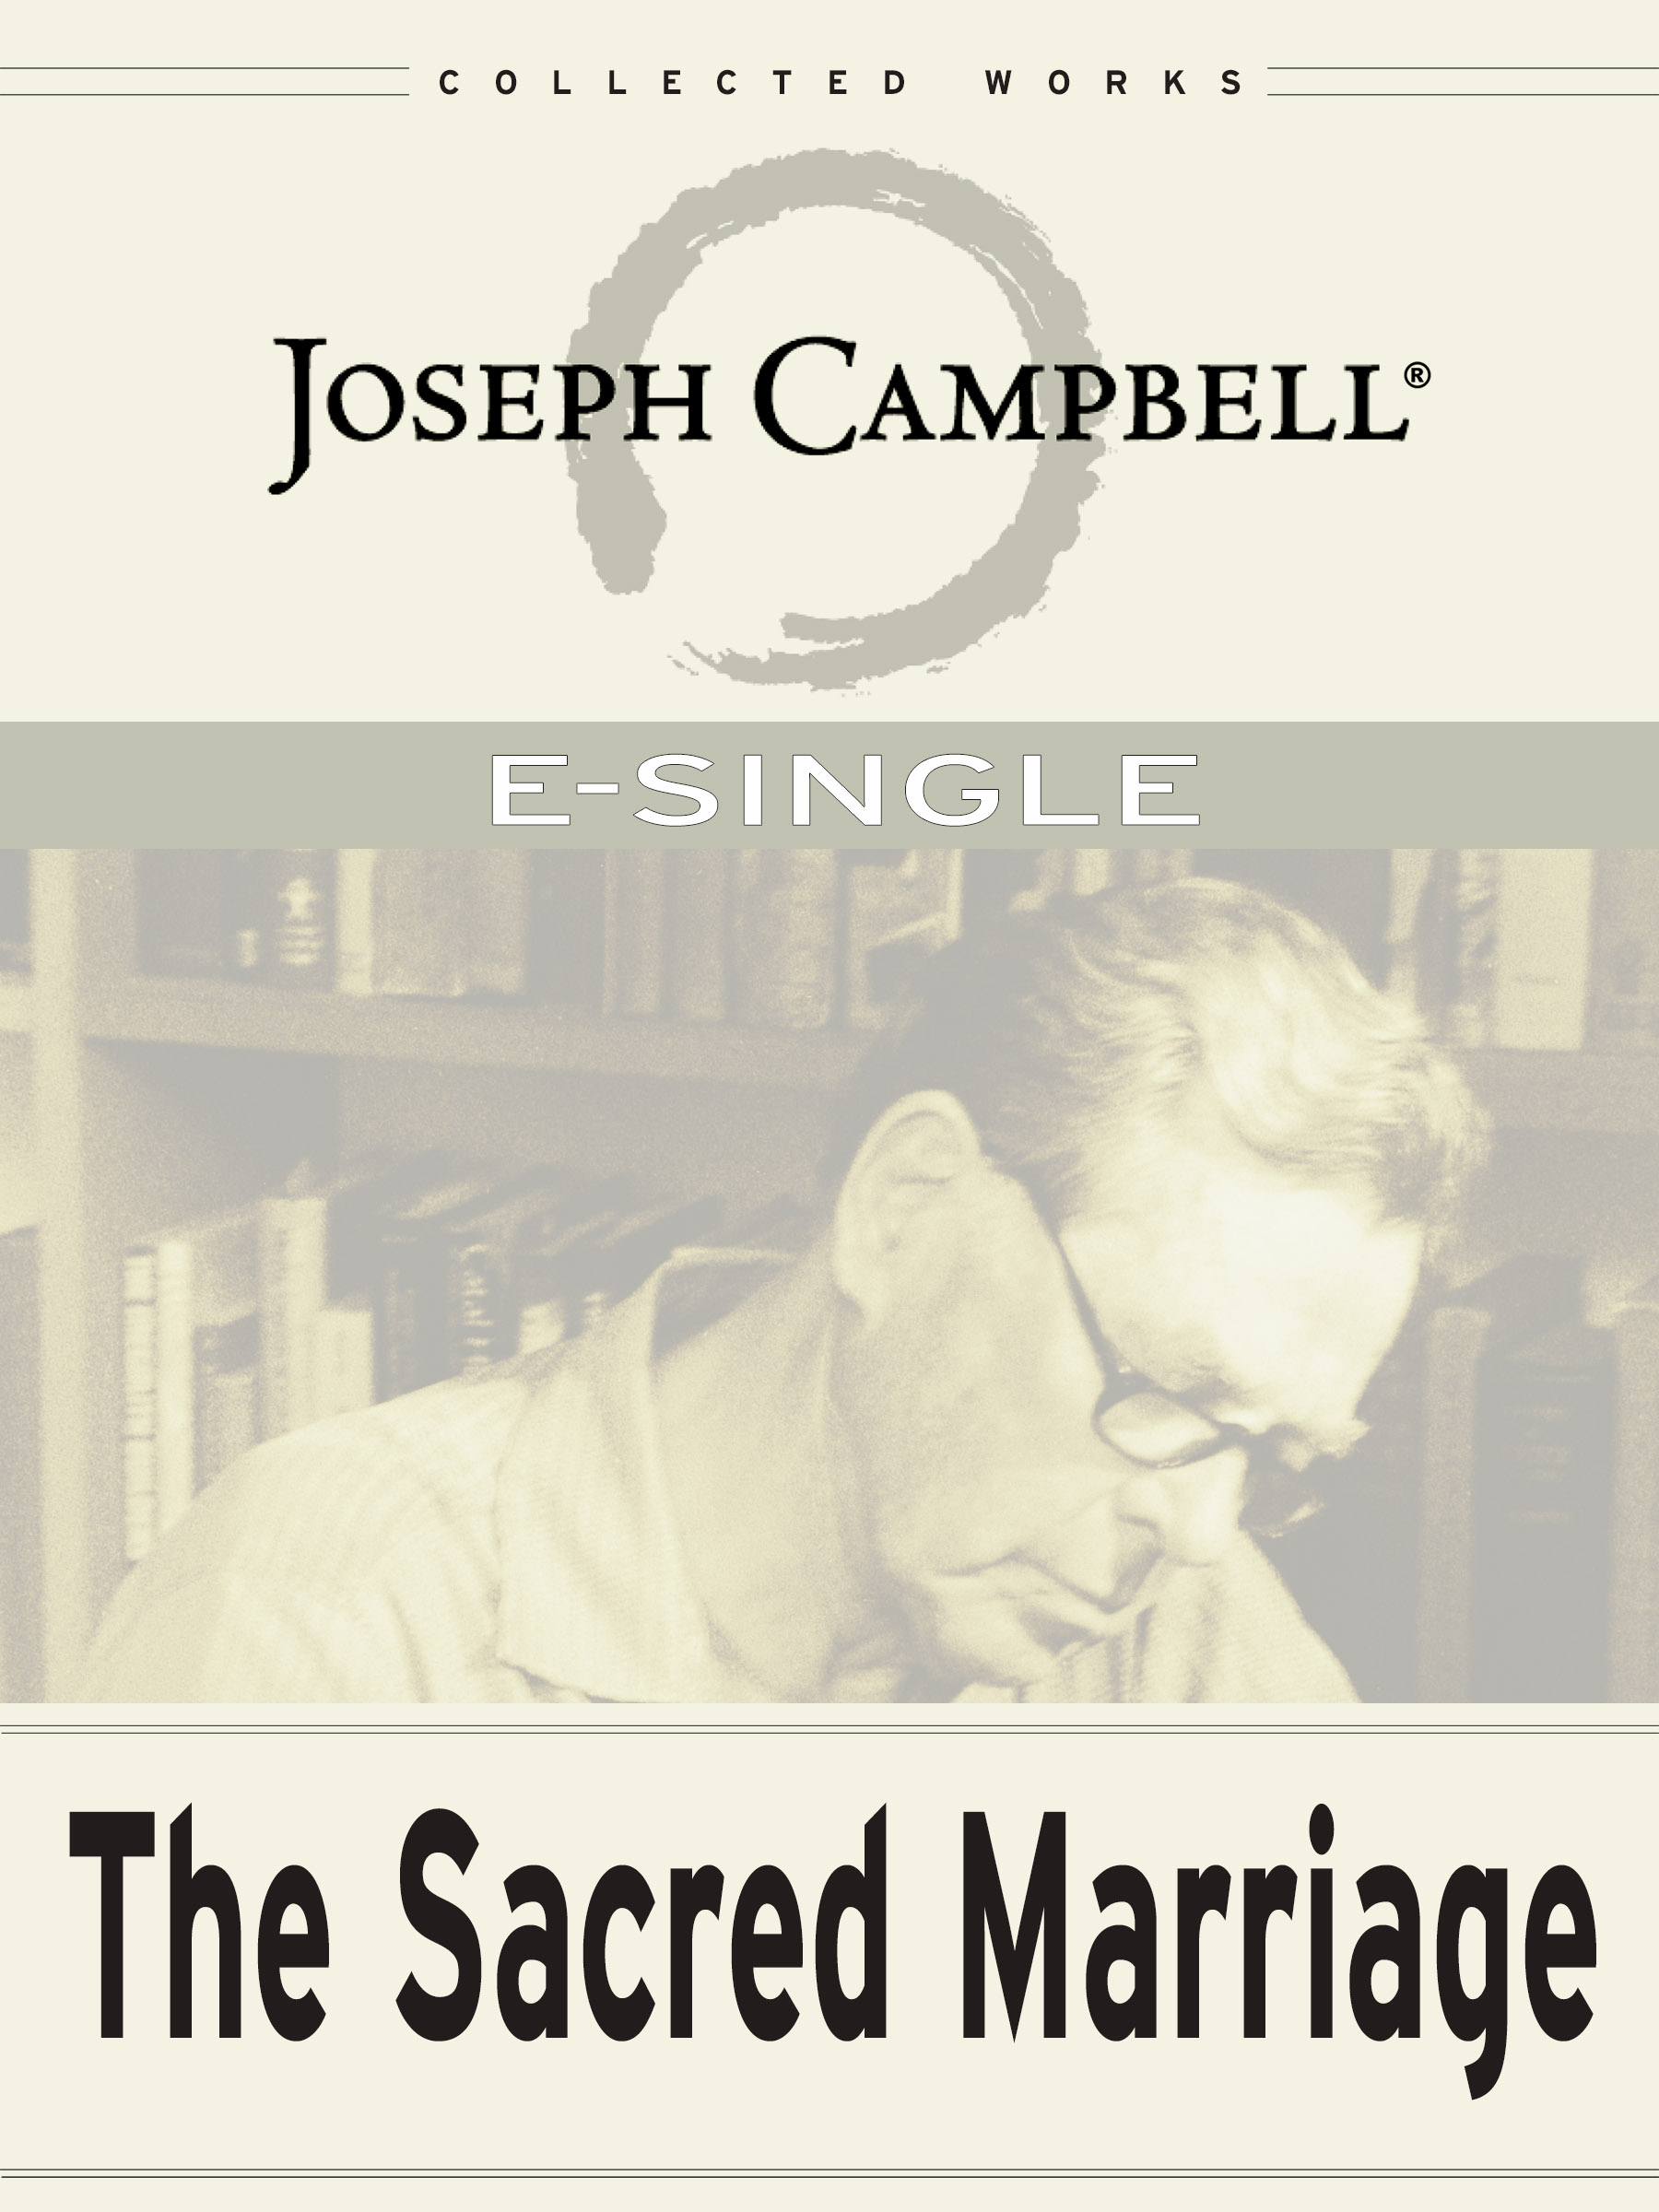 eSingle: The Sacred Marriage — Thoughts on Love, Myth, and Partnership